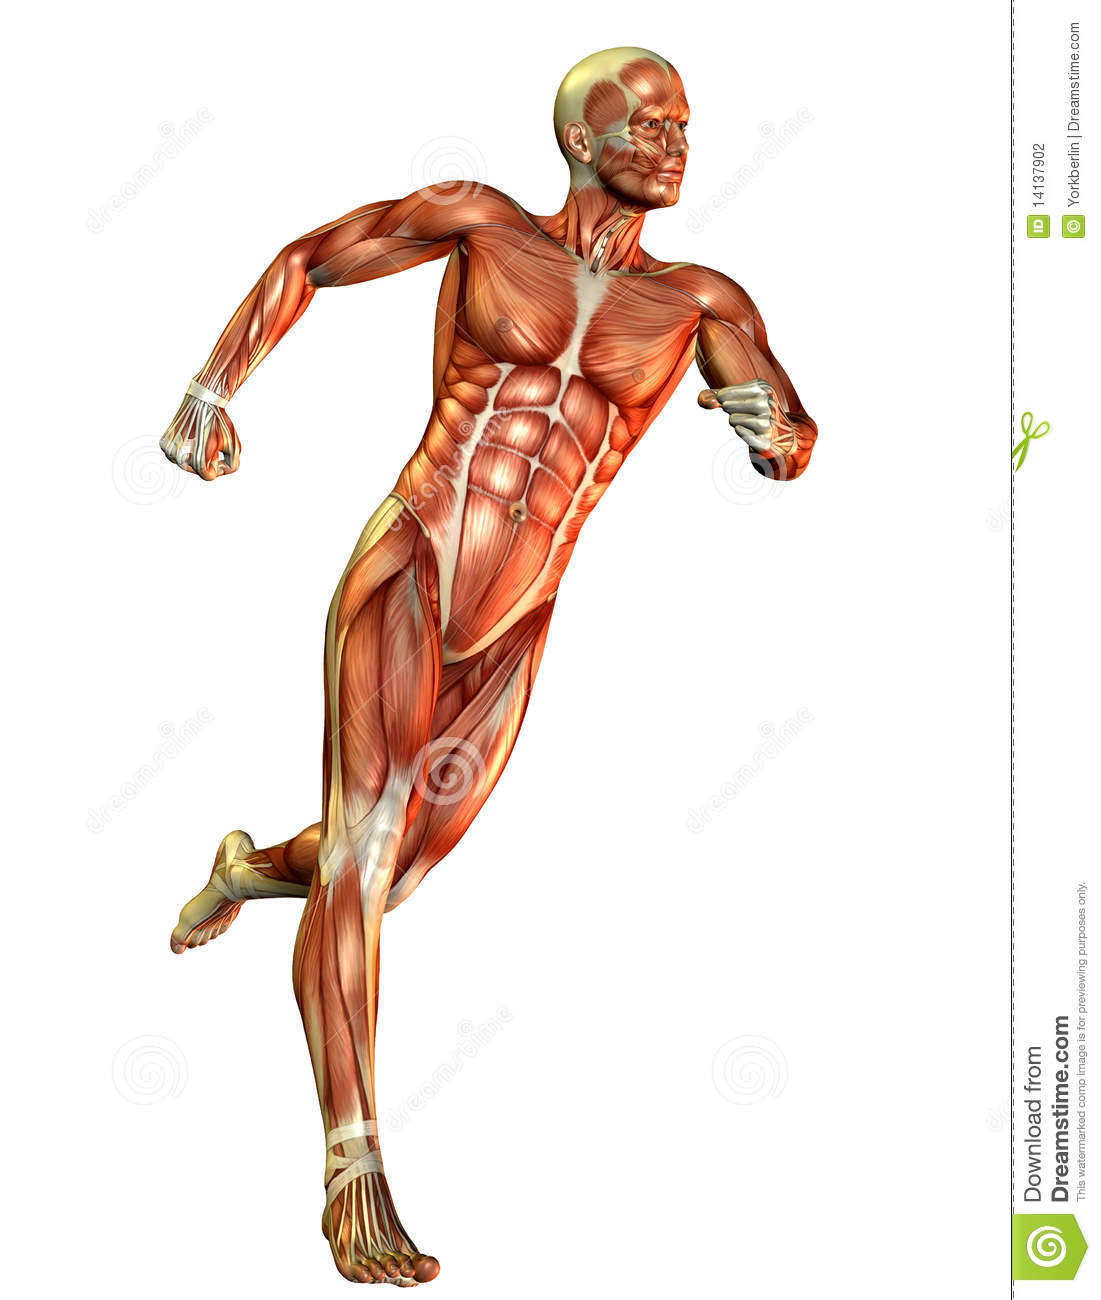 Male Muscle Building Course Study Stock Illustration - Illustration ...